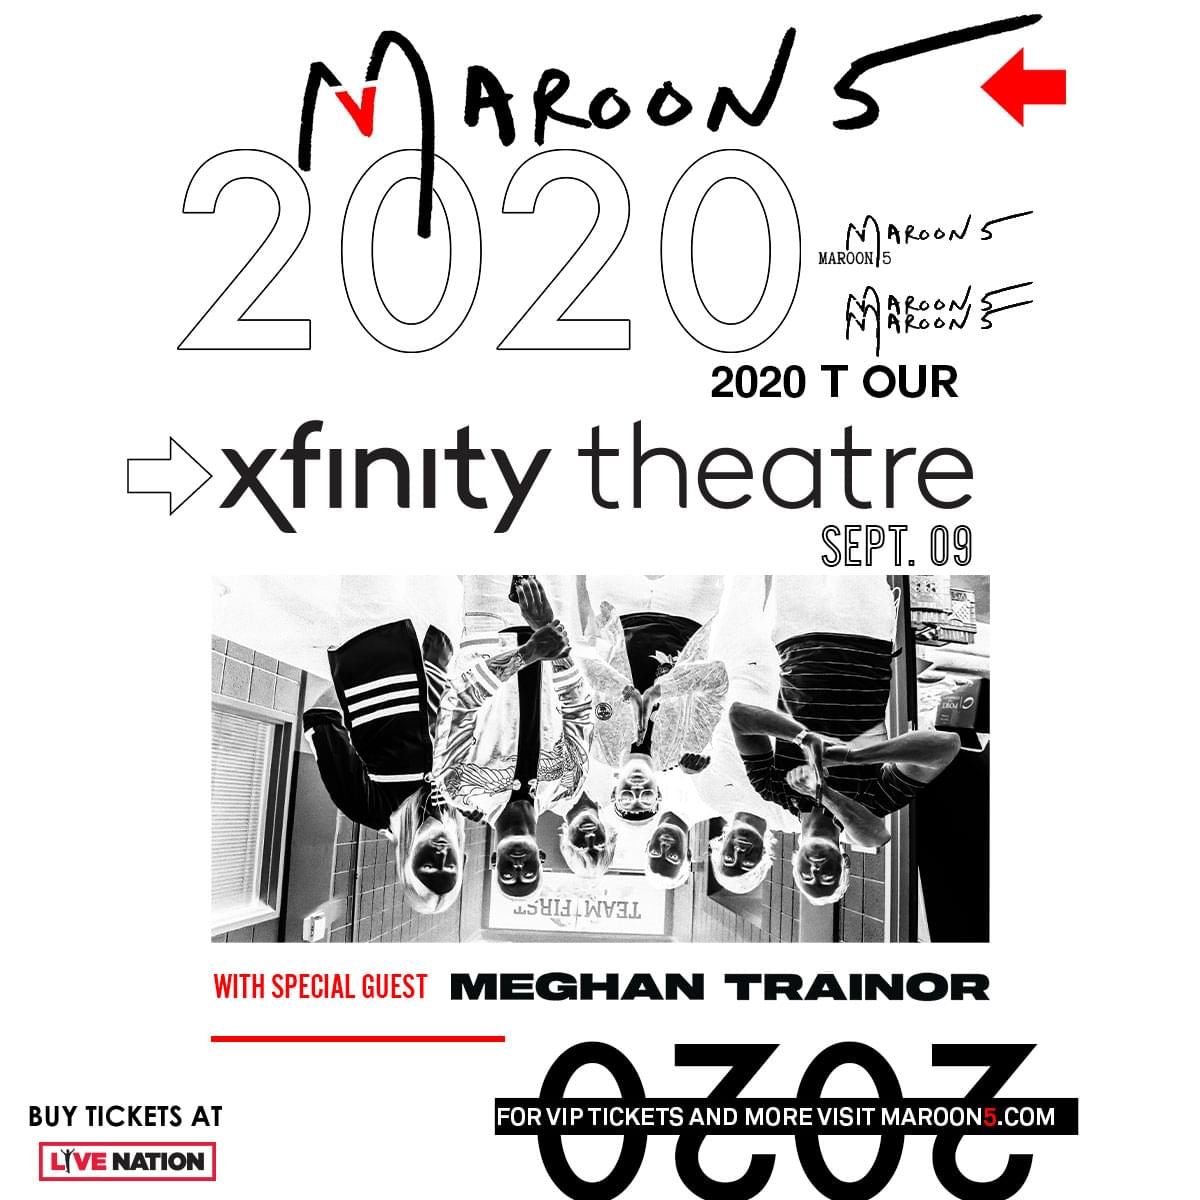 Enter to win tickets to Maroon 5 with Special Guest Meghan Trainor at the Xfinity Theatre